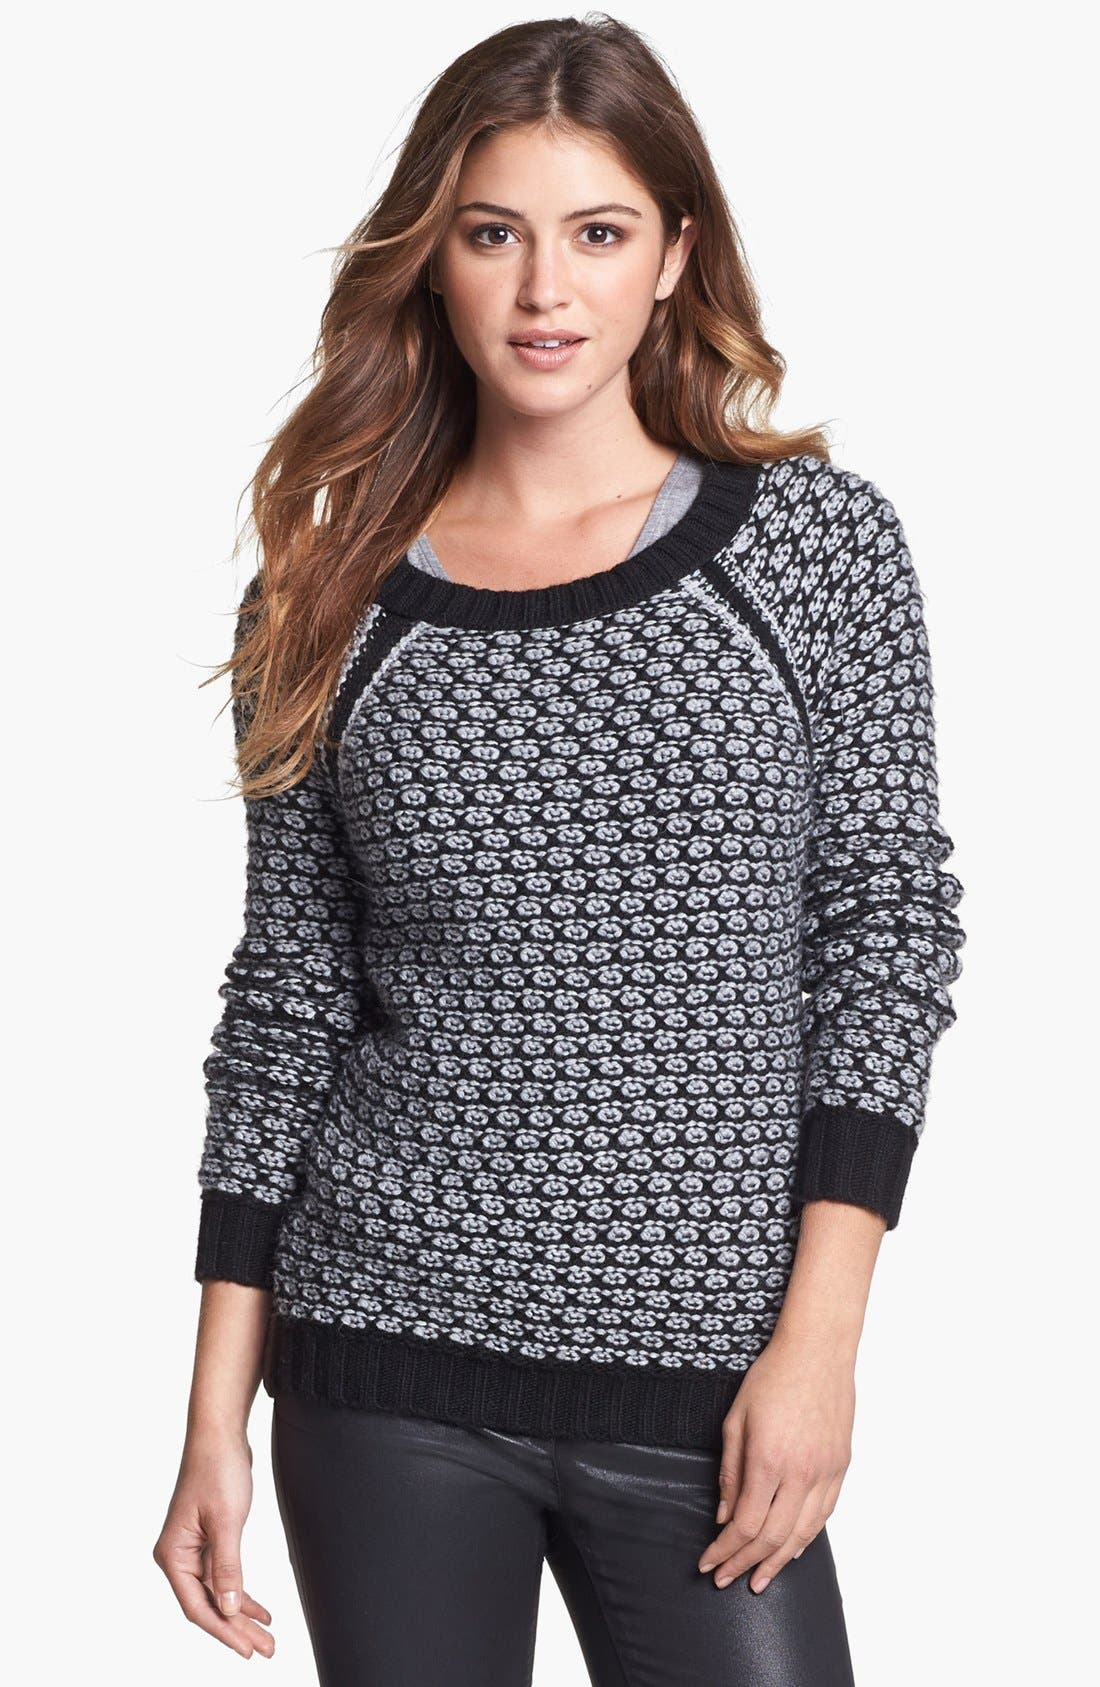 Main Image - Two by Vince Camuto Side Zip Honeycomb Knit Sweater